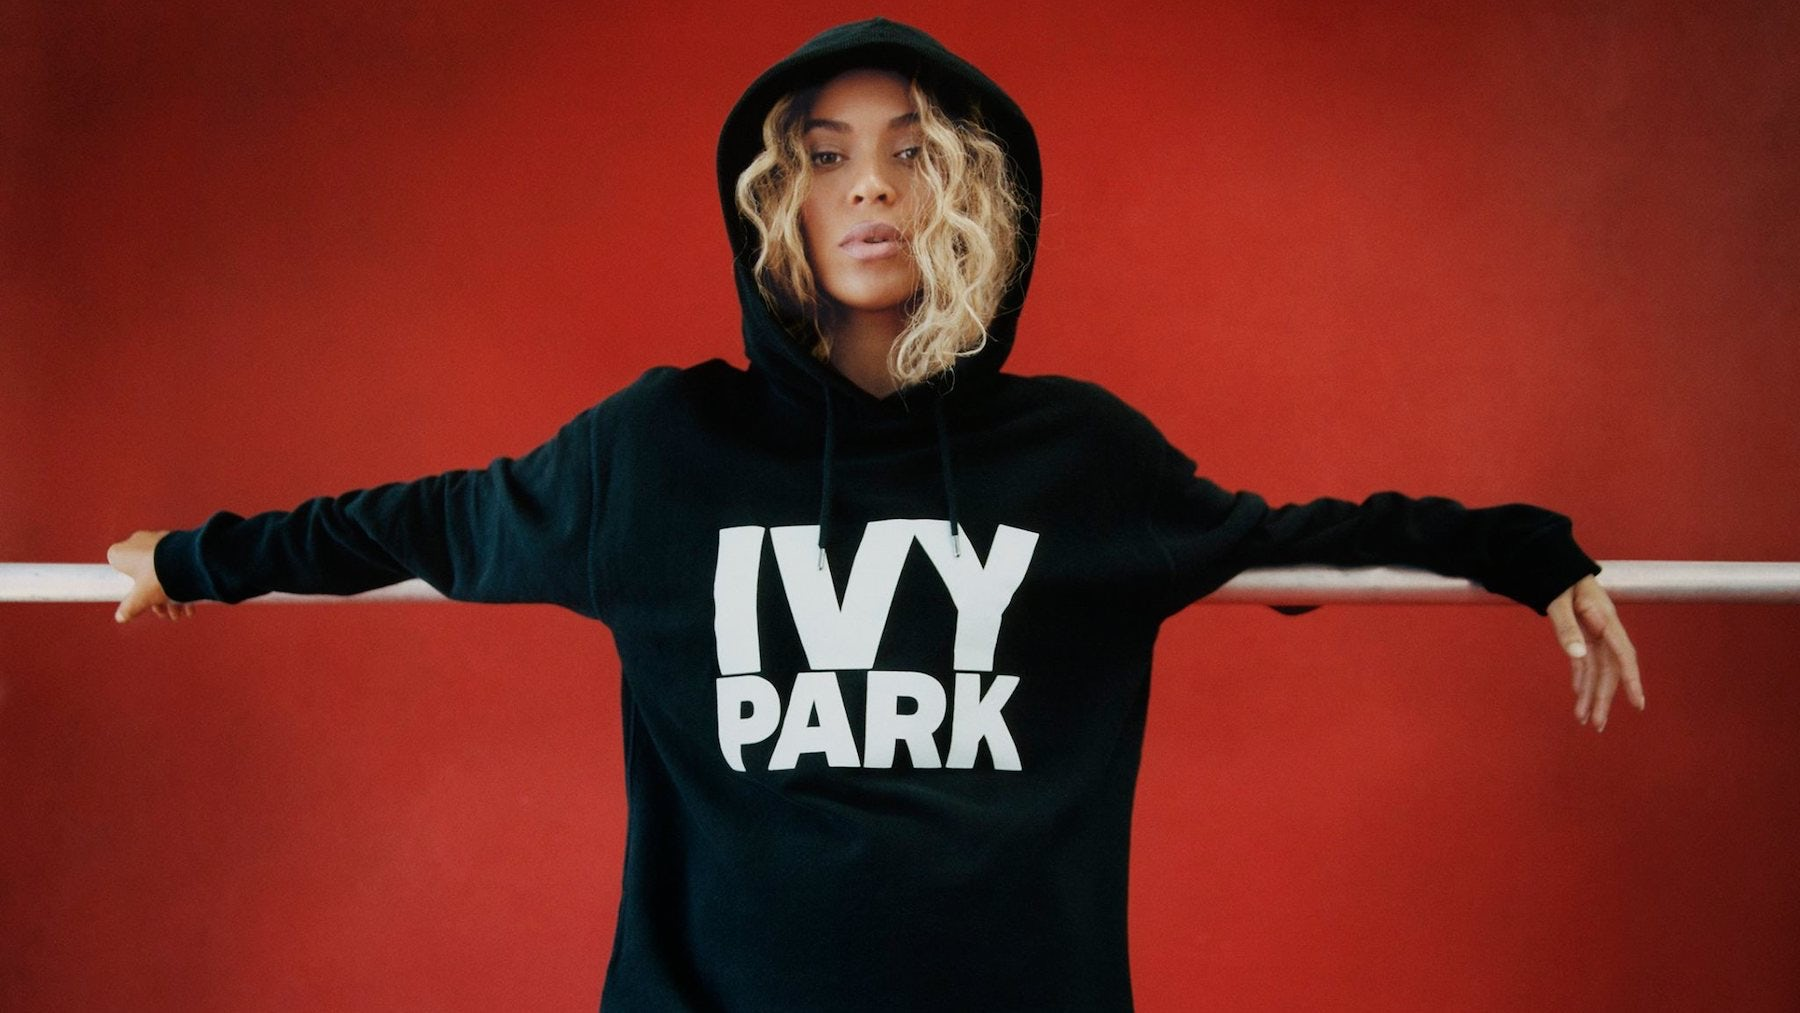 Source: Ivy Park